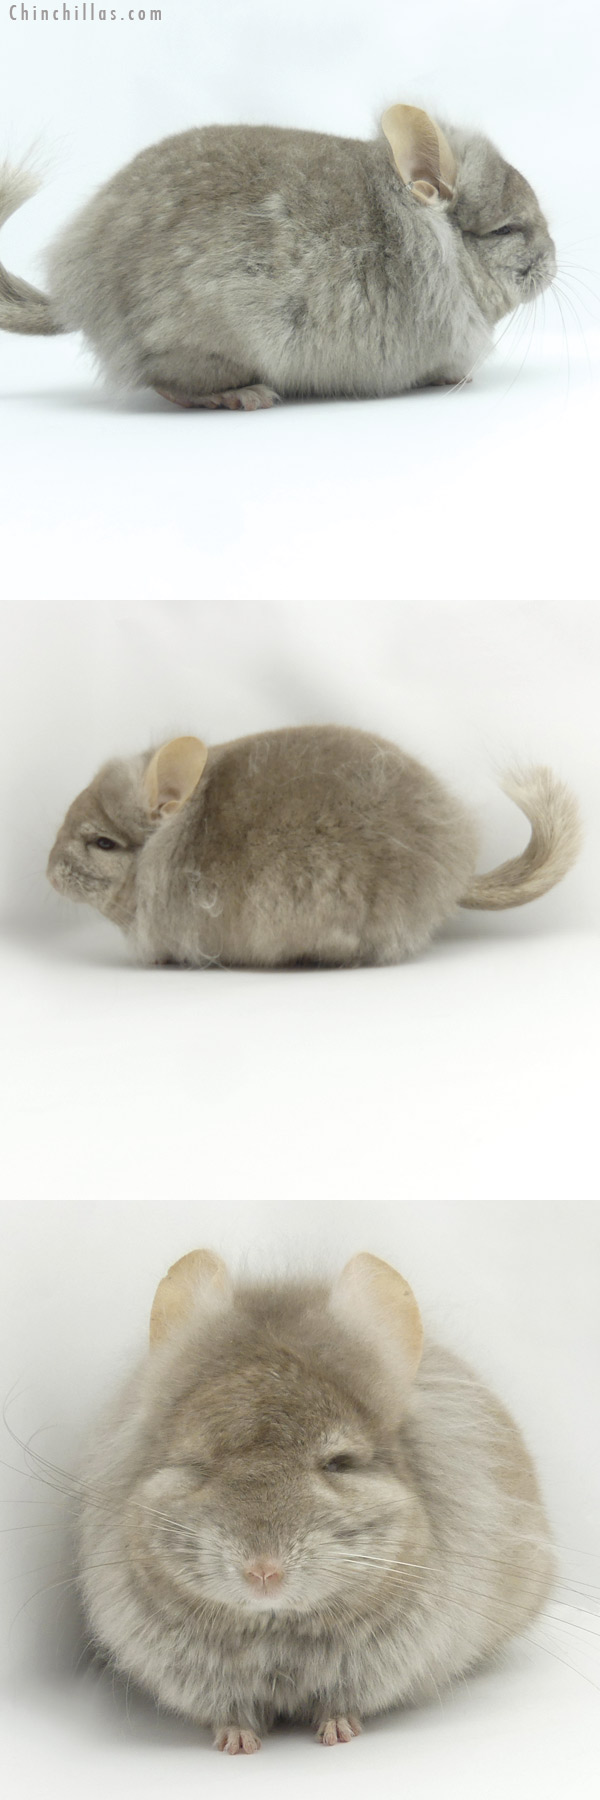 19428 Tan ( Locken Carrier ) CCCU Royal Persian Angora Male Chinchilla